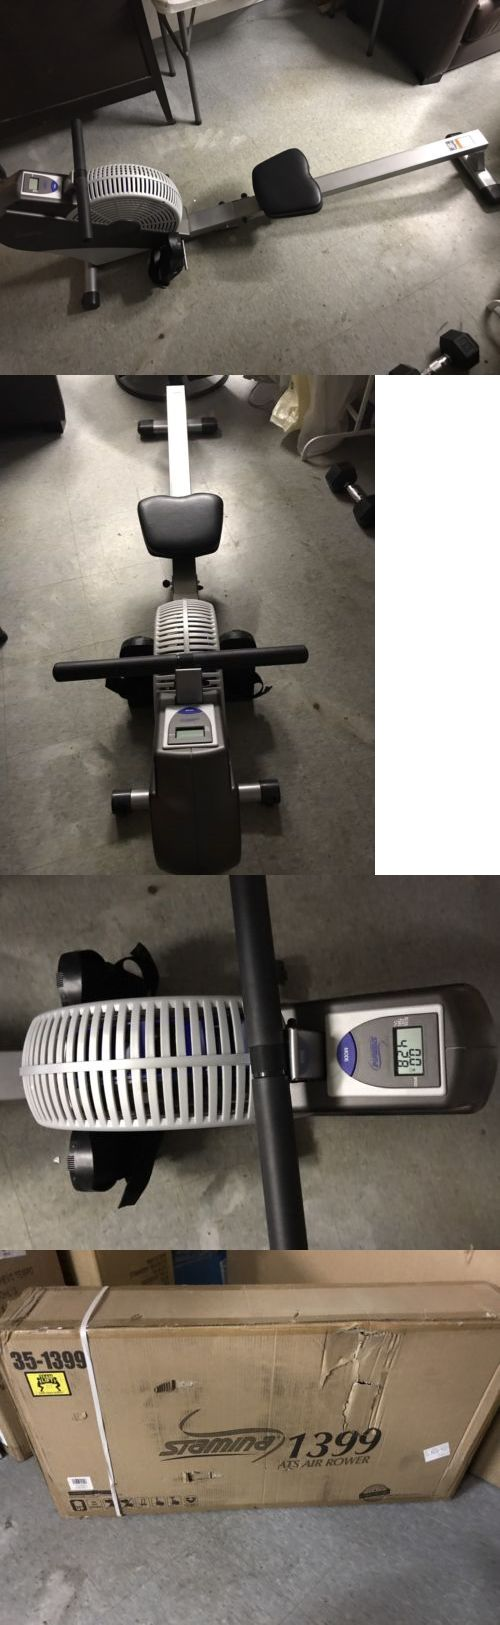 Rowing Machines 28060: Rowing Machine Stamina Ats 1399 Air Rower Cardio Exercise New 2017 Mfg Direct -> BUY IT NOW ONLY: $250 on eBay!